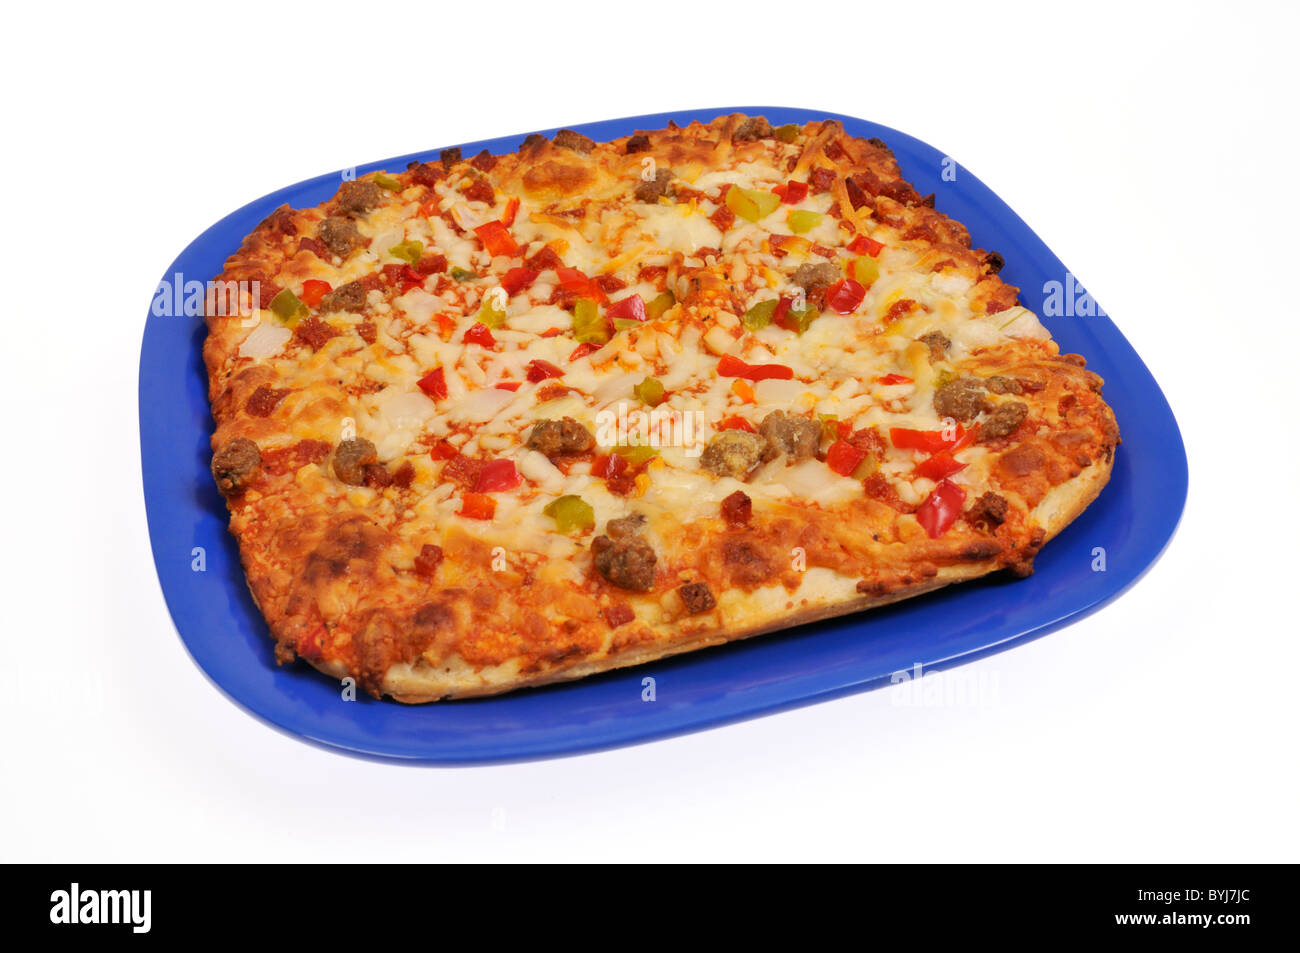 Cooked rectangle pizza on blue plate on white background, cutout. - Stock Image